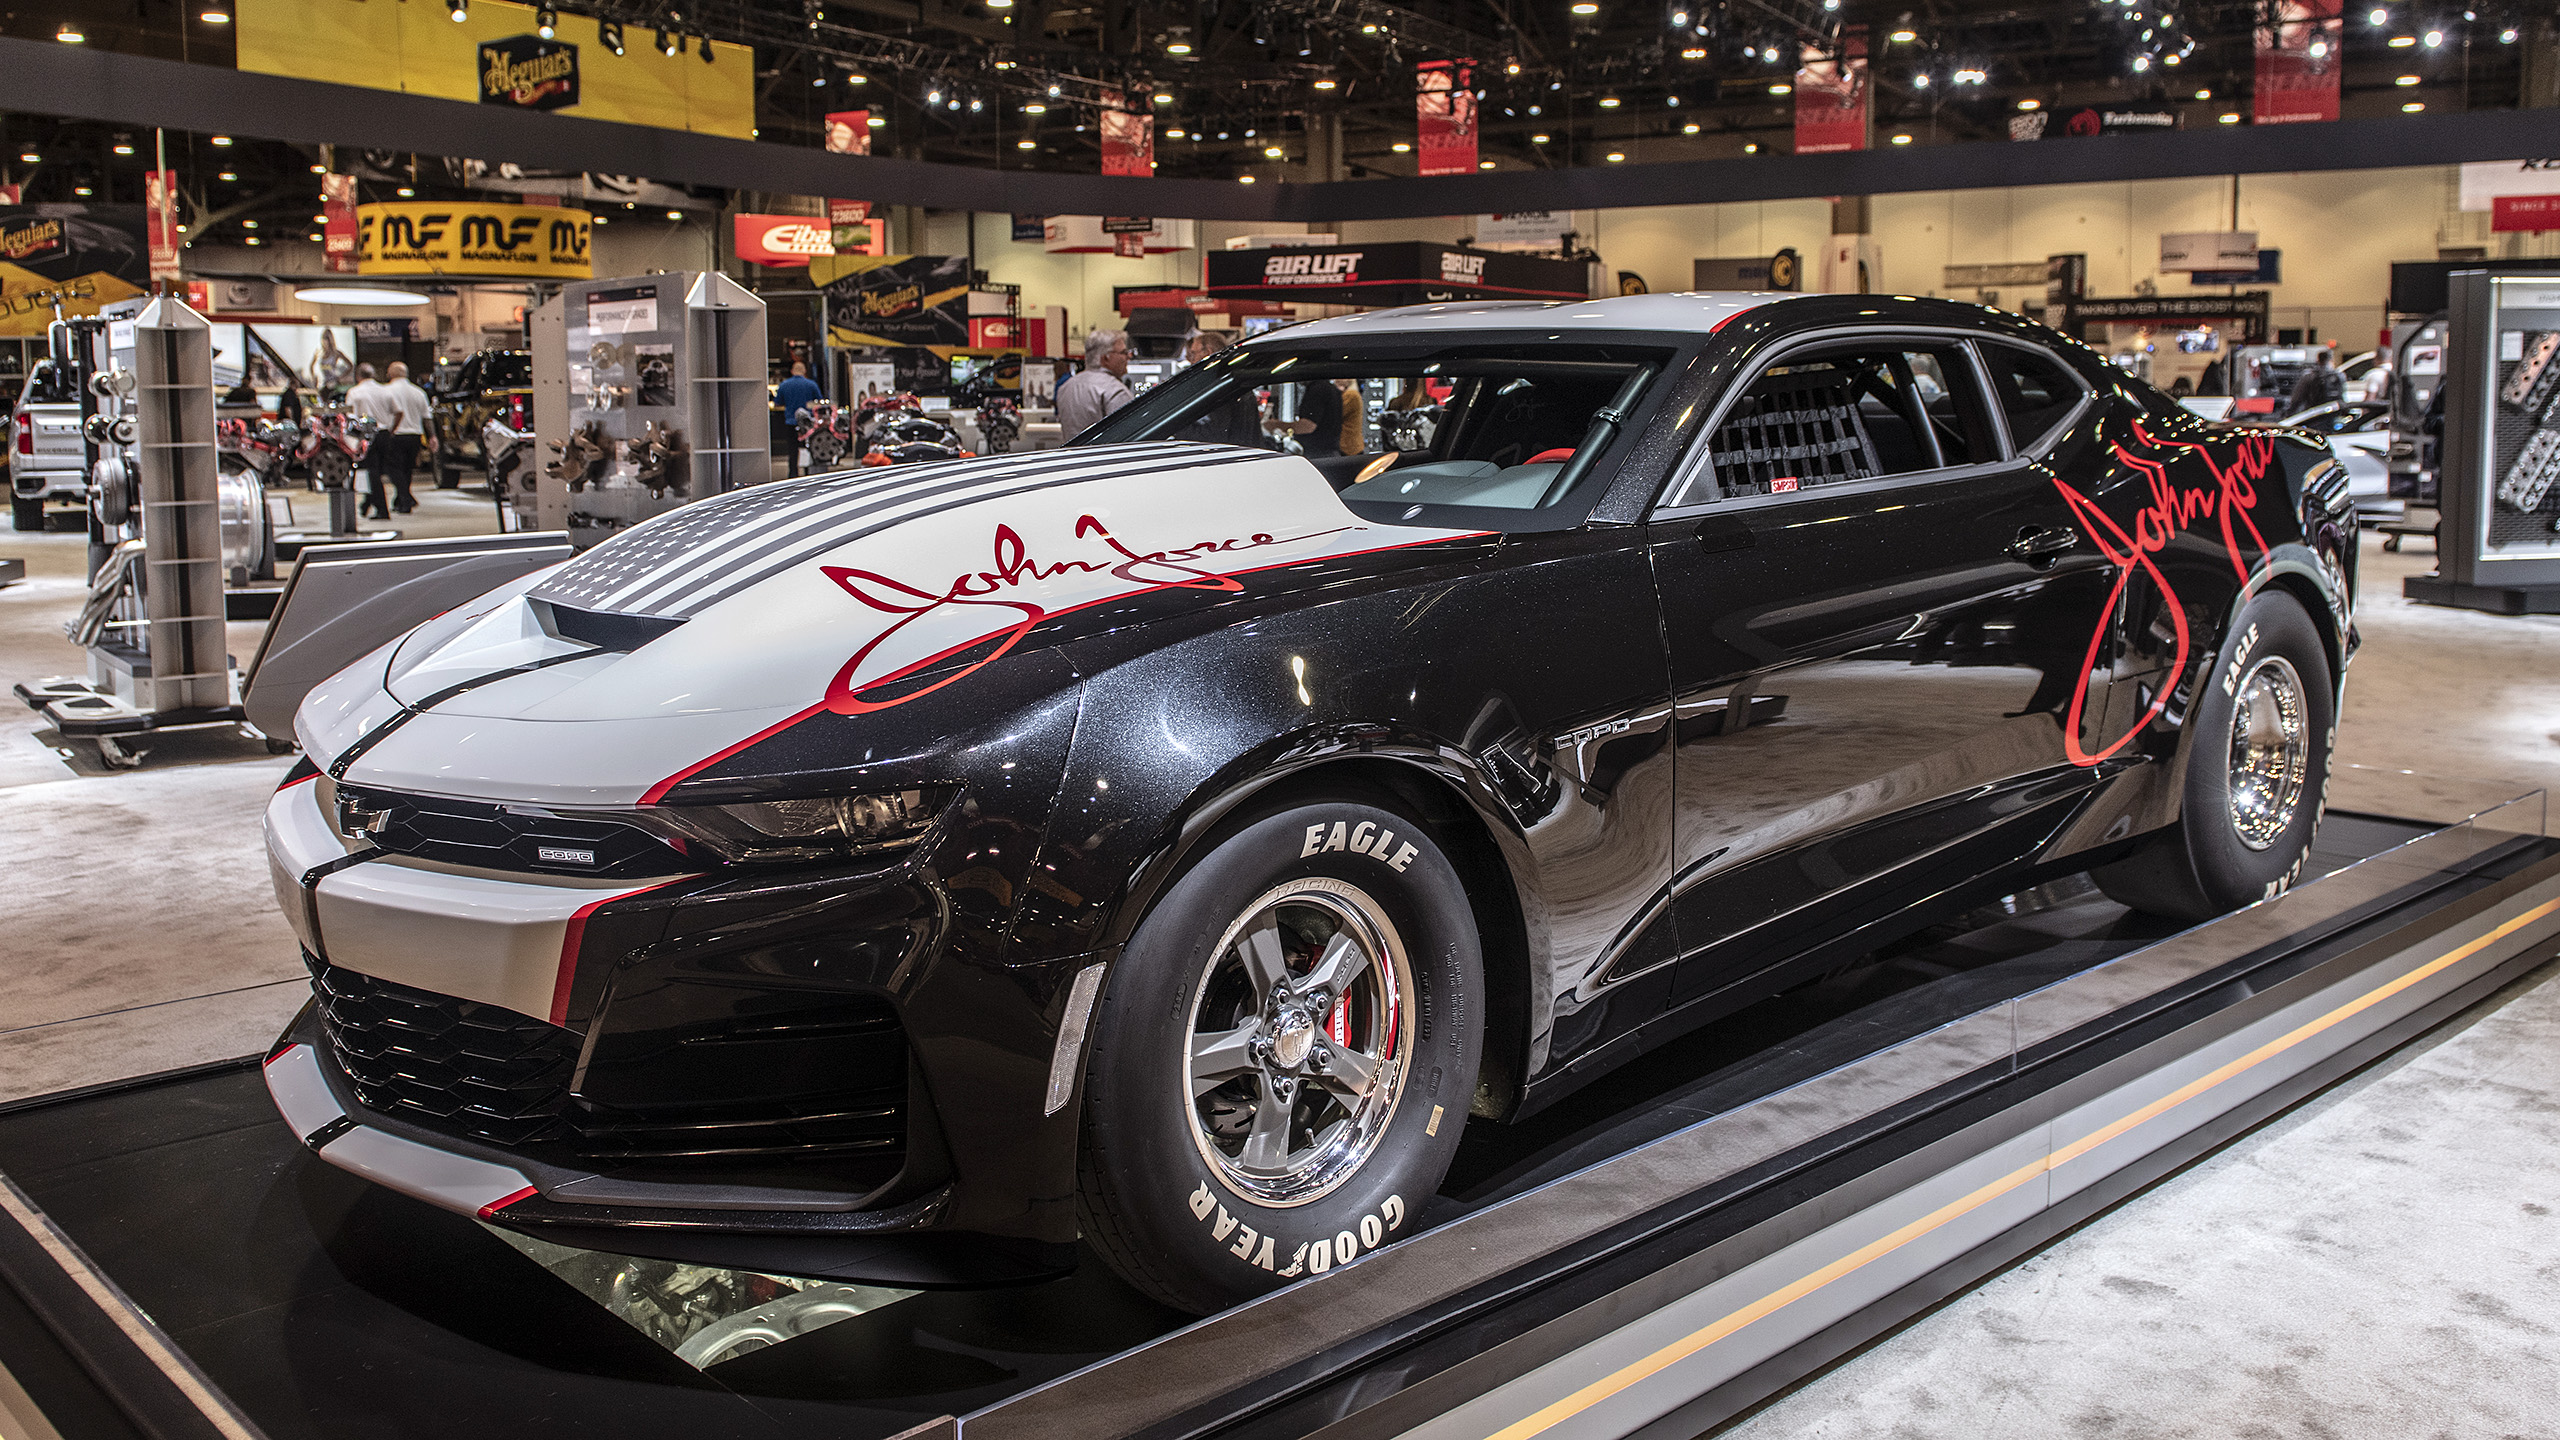 2020 Chevrolet COPO Camaro John Force unveiled at SEMA ...